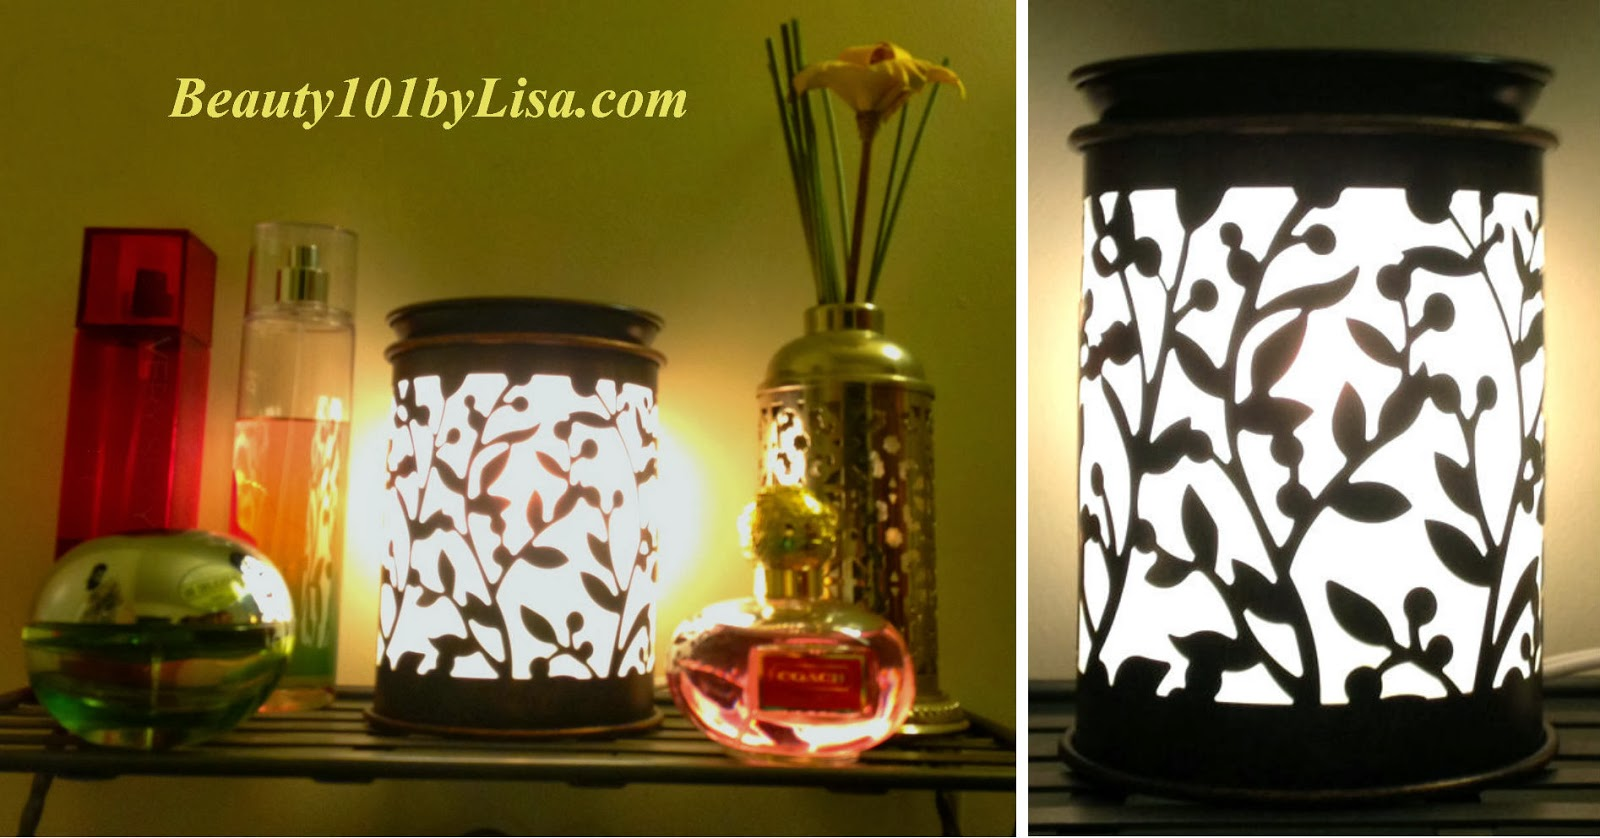 Beauty101bylisa Flameless Candles Amp Warmers